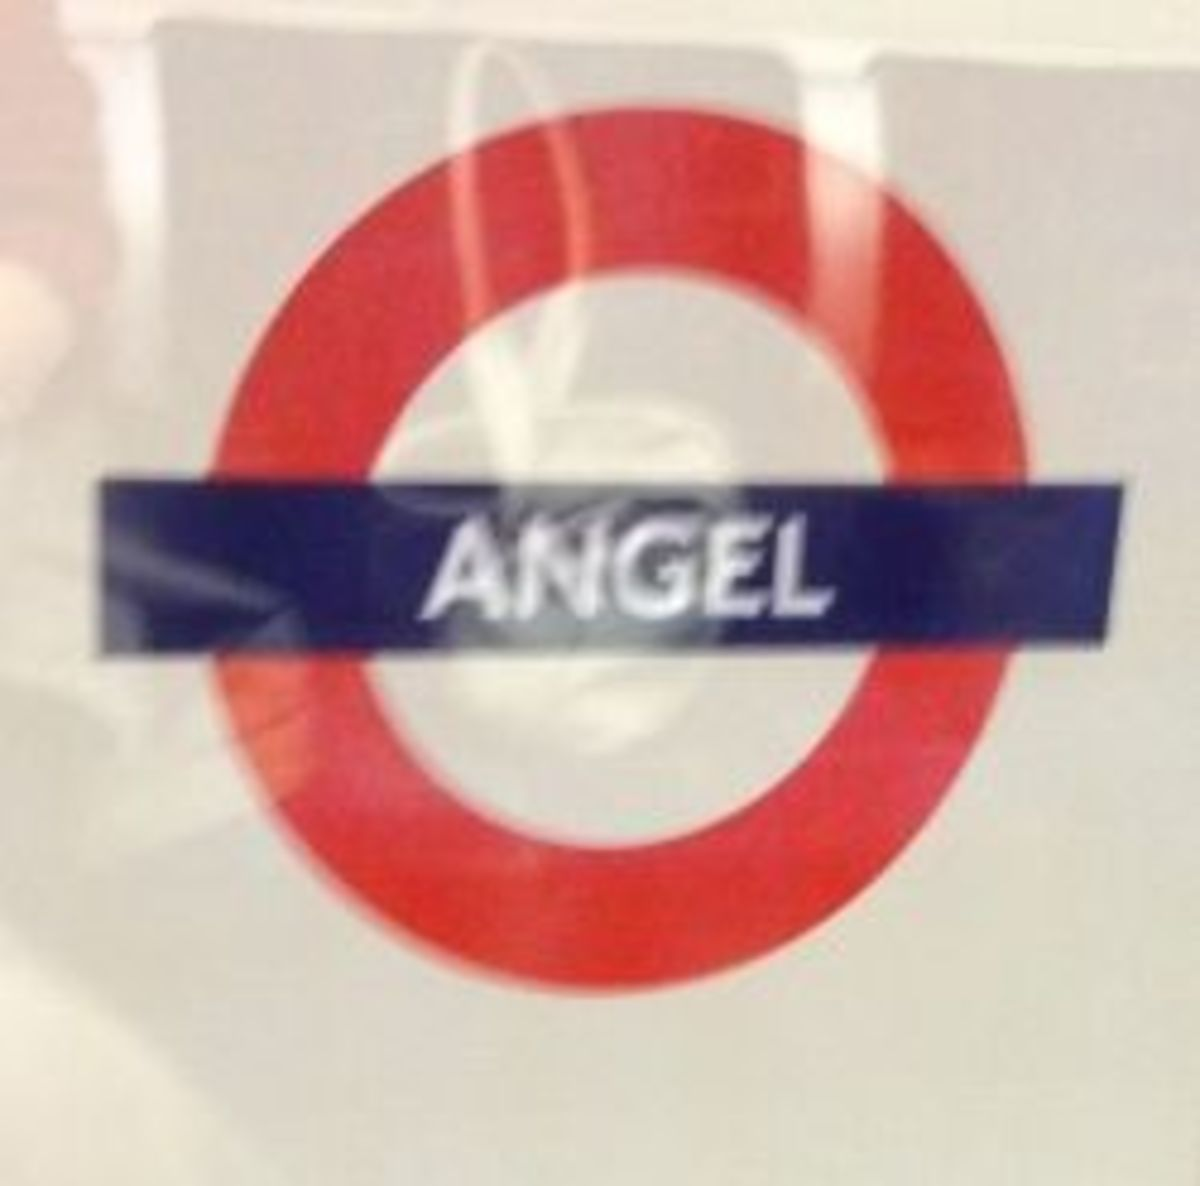 Angel tube station on London underground